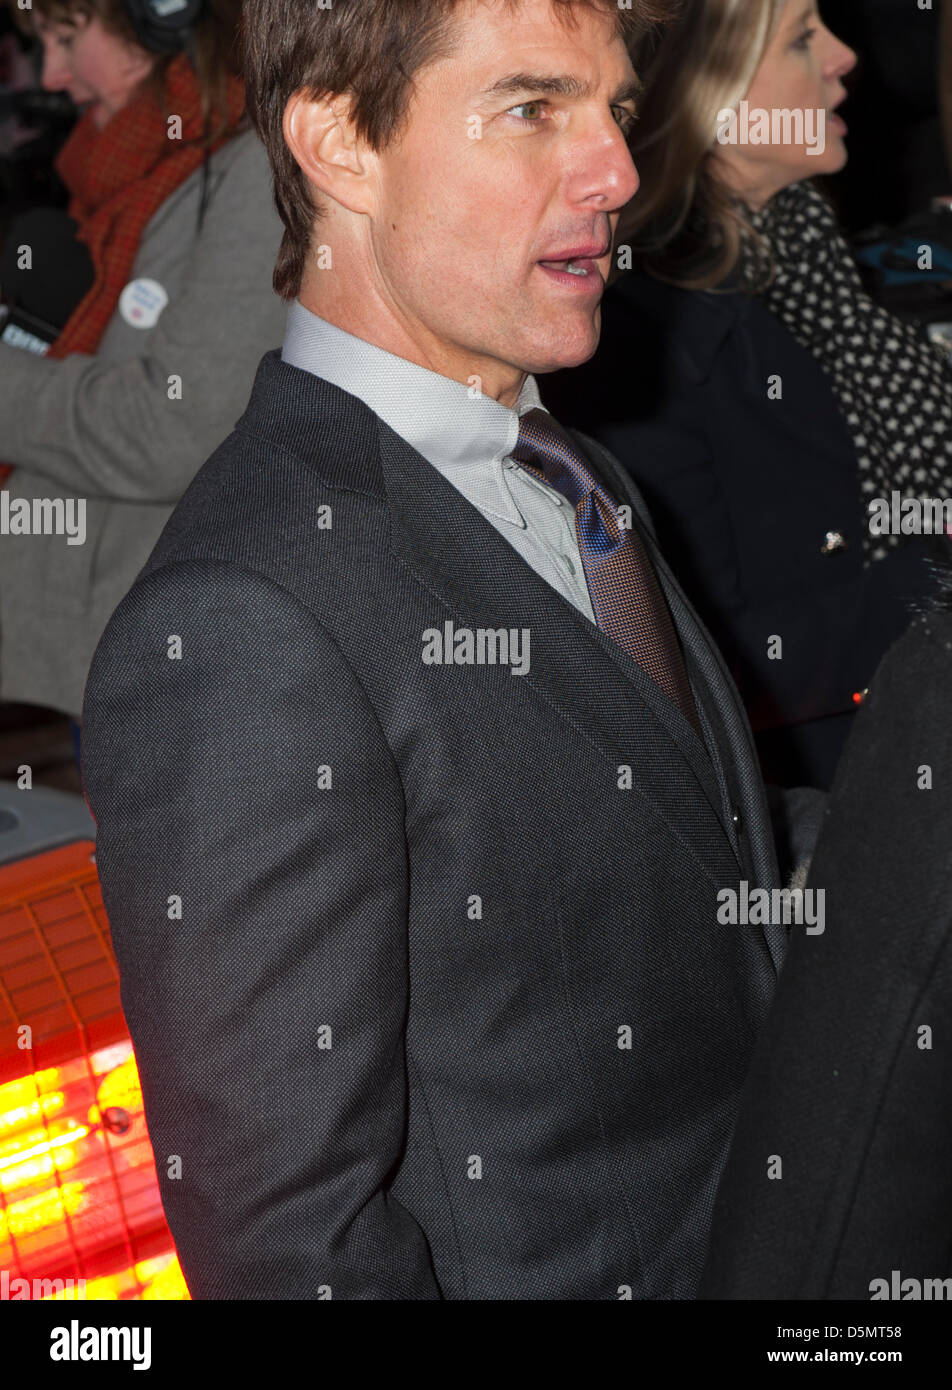 London BFi i Max, 4th Apri 2013, Tom Cruise attends Oblivion Uk Premiere  BFi  Imax, South Bank  London. - Stock Image